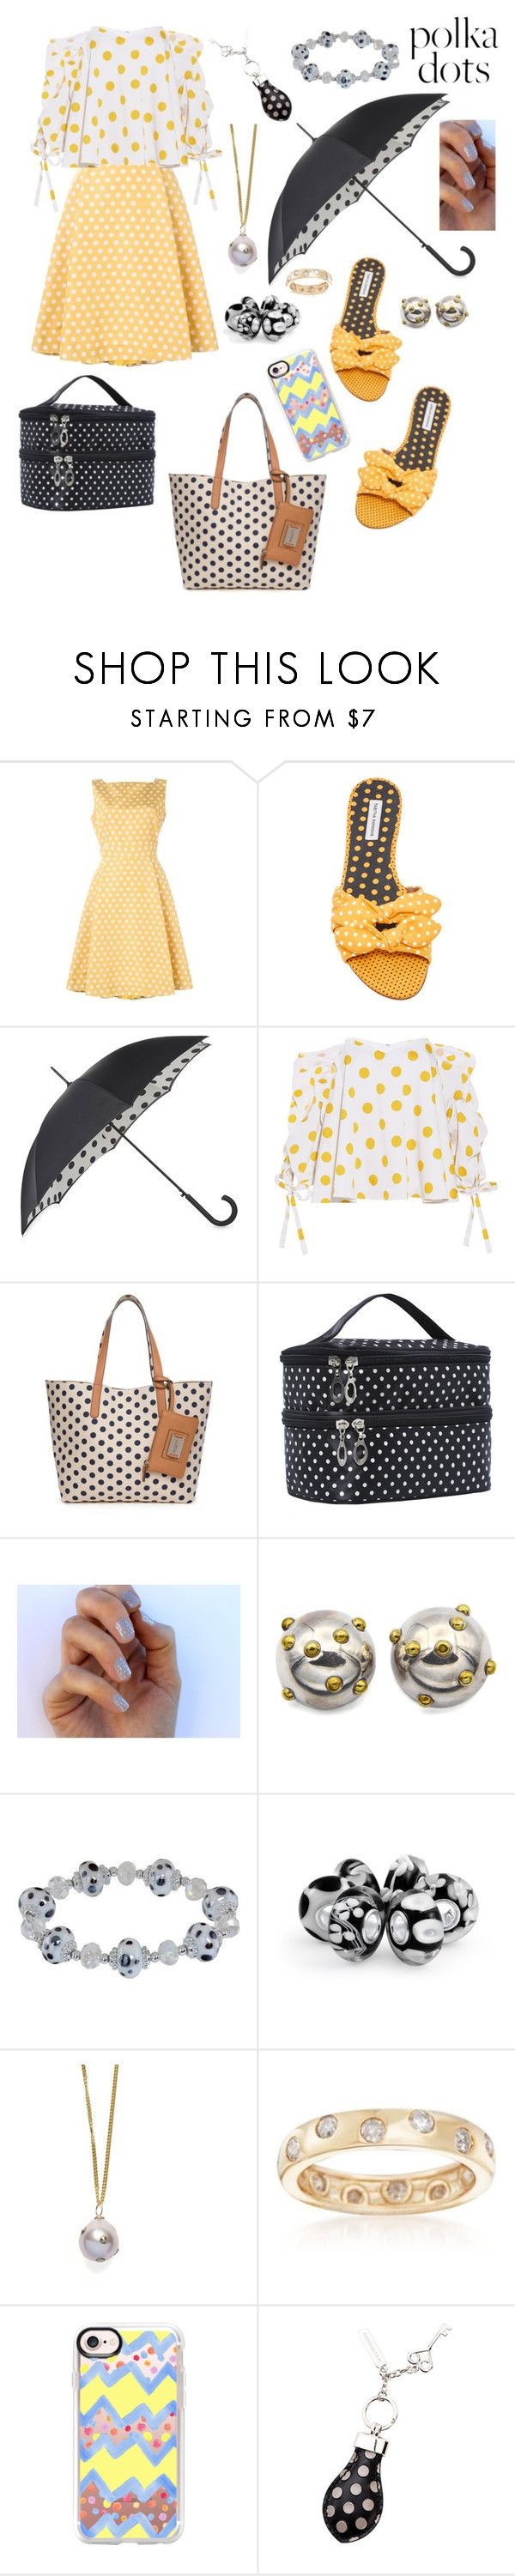 """Polka dots 🍄"" by stellastar22 ❤ liked on Polyvore featuring Rochas, Tabitha Simmons, Fulton, Caroline Constas, Rosetti, SoGloss, LOVA, Bling Jewelry, Bark and Ross-Simons"